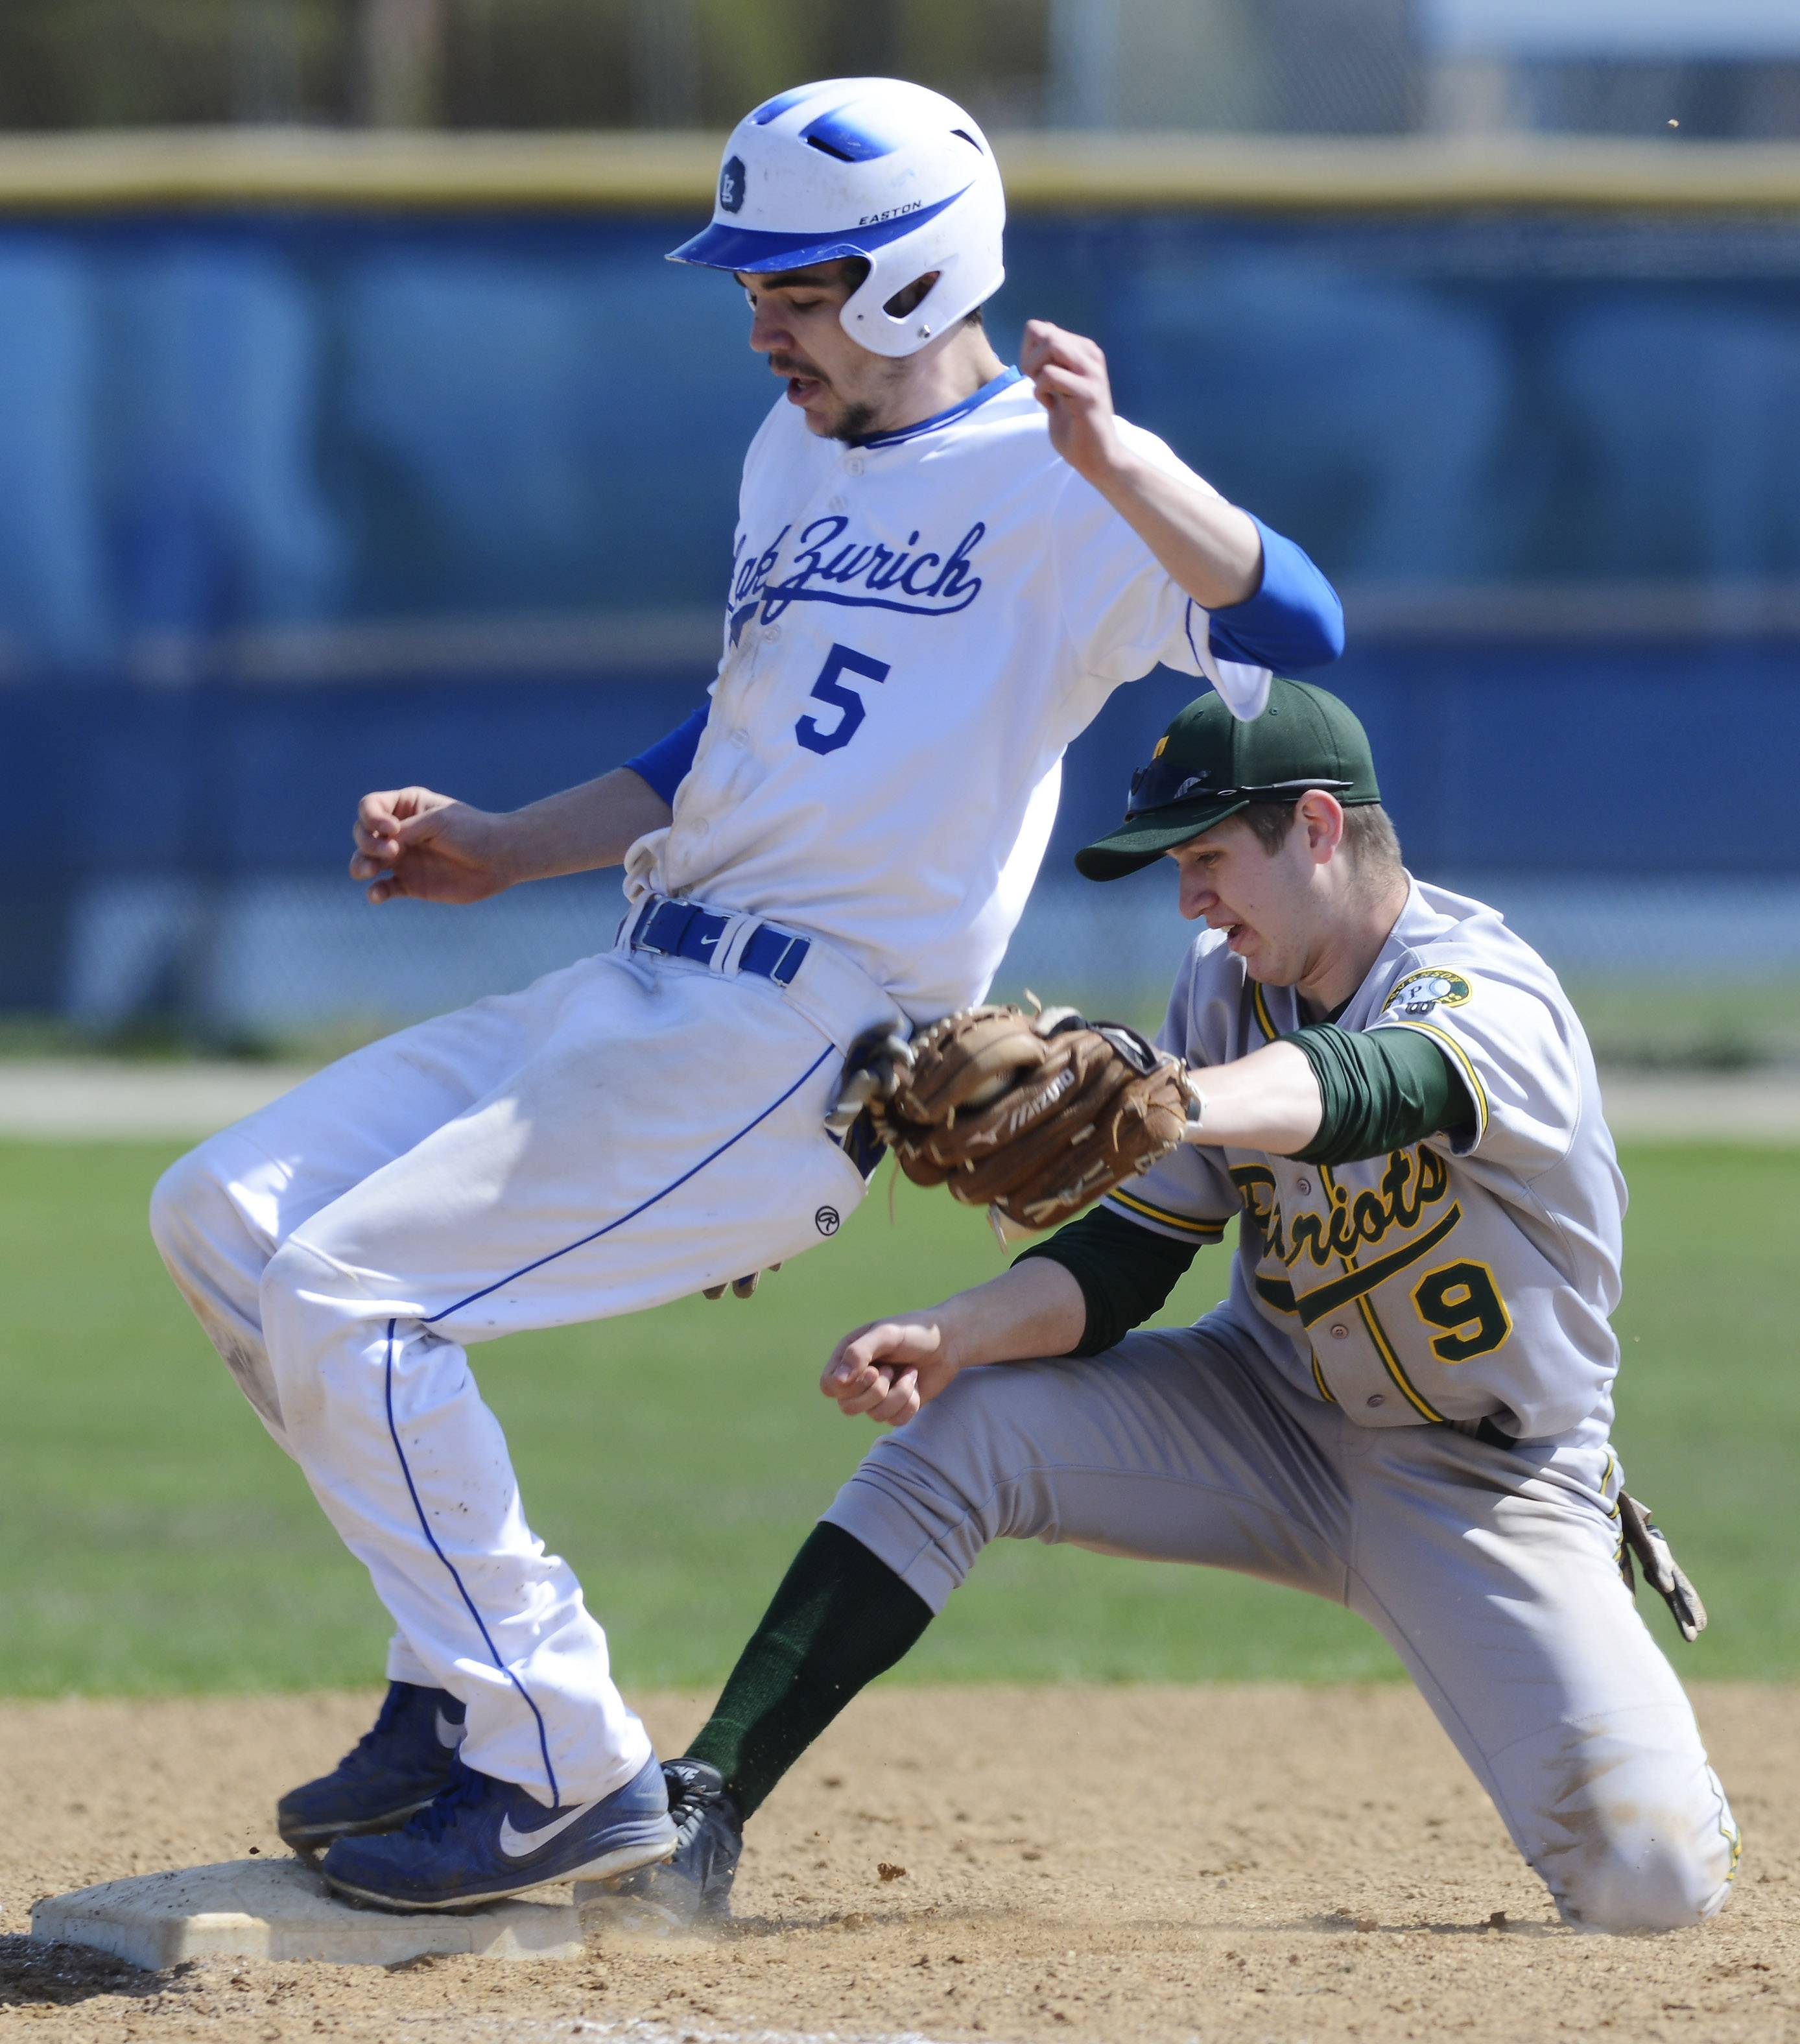 Lake Zurich's Steve Elrod gets tagged out by Stevenson third baseman Sean Wilson on an attempted steal during Saturday's game at Lake Zurich.